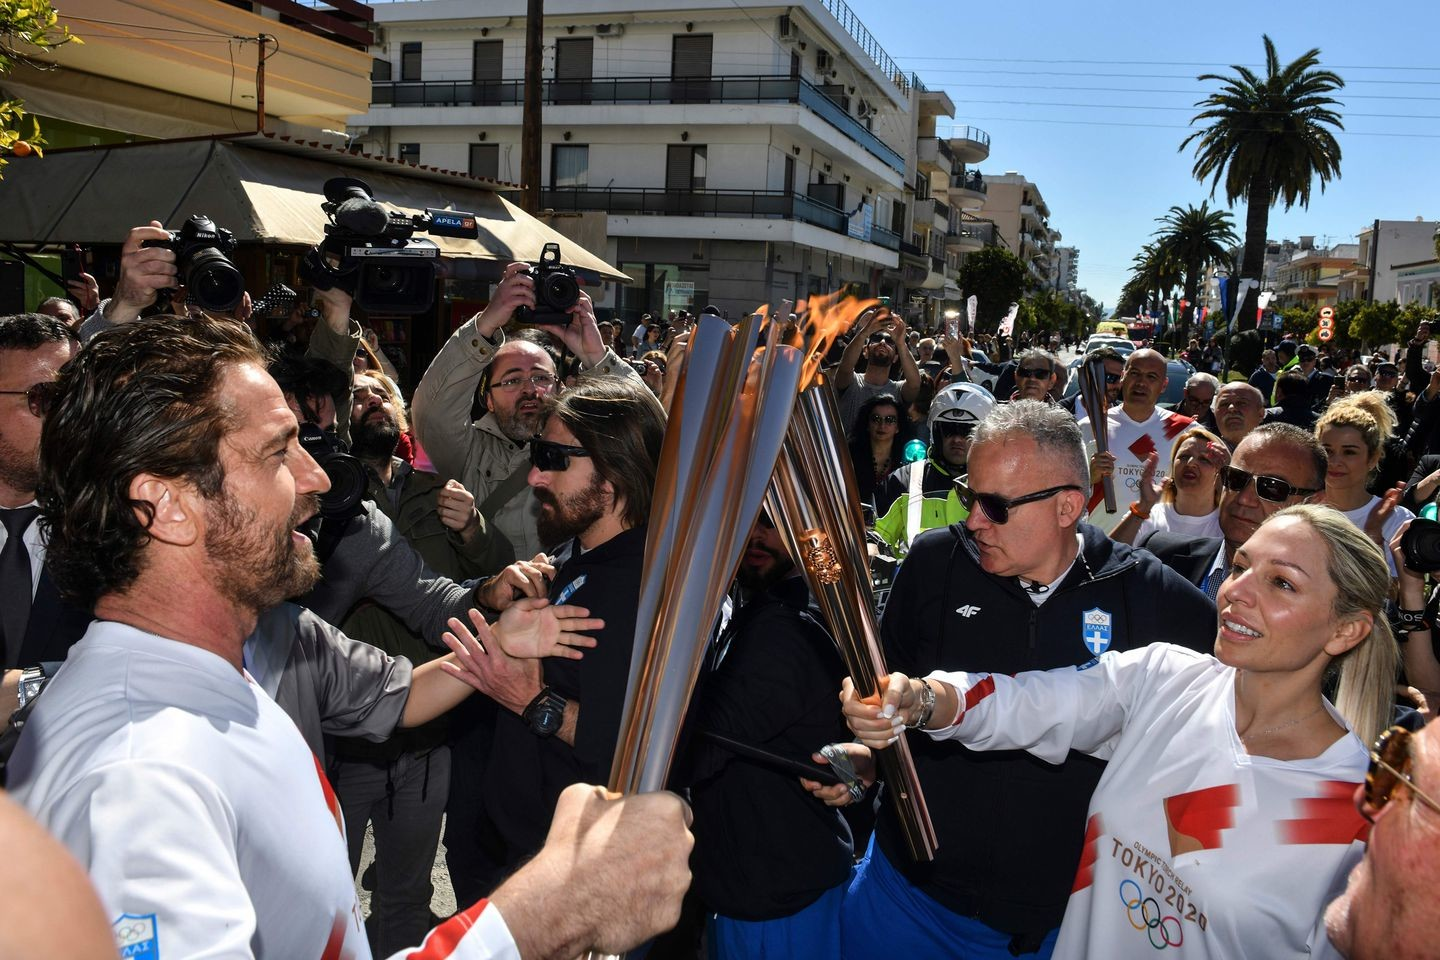 One day after flame was lit, Greece suspends Olympic torch relay because of coronavirus